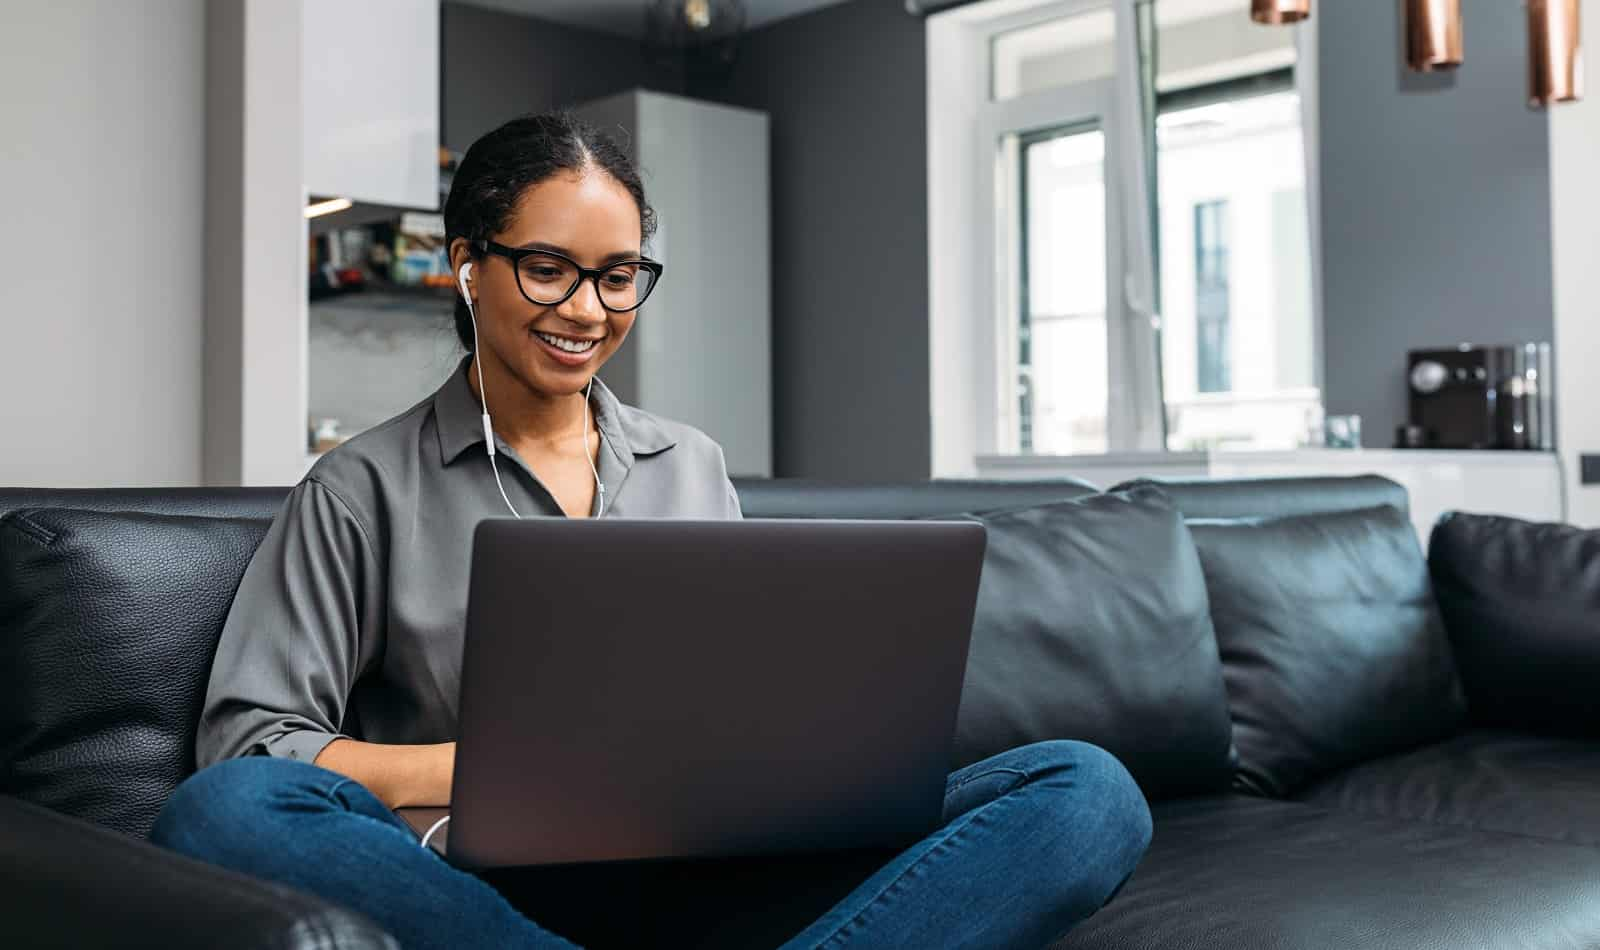 Young woman video calling using a laptop sitting on a sofa that doubles as her home office space